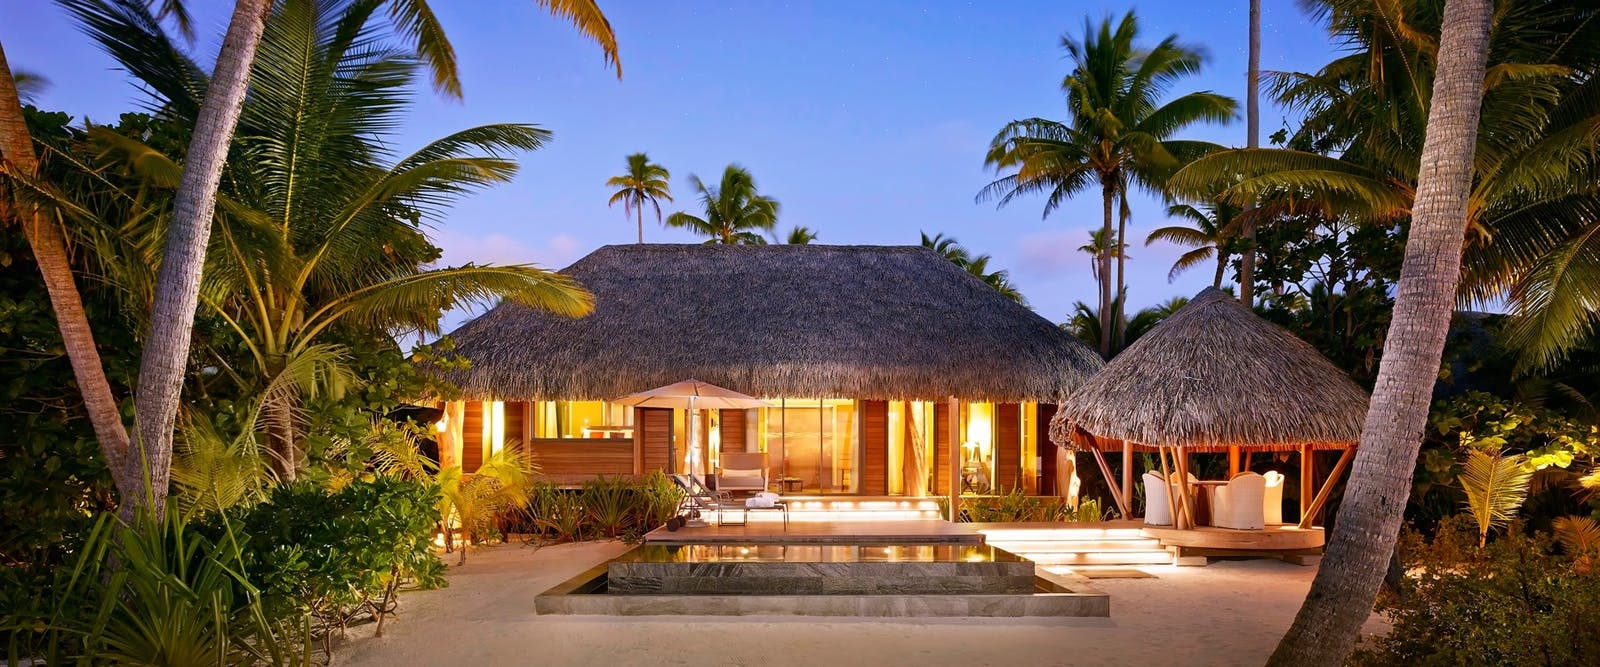 Villa at The Brando, Tahiti, French Polynesia